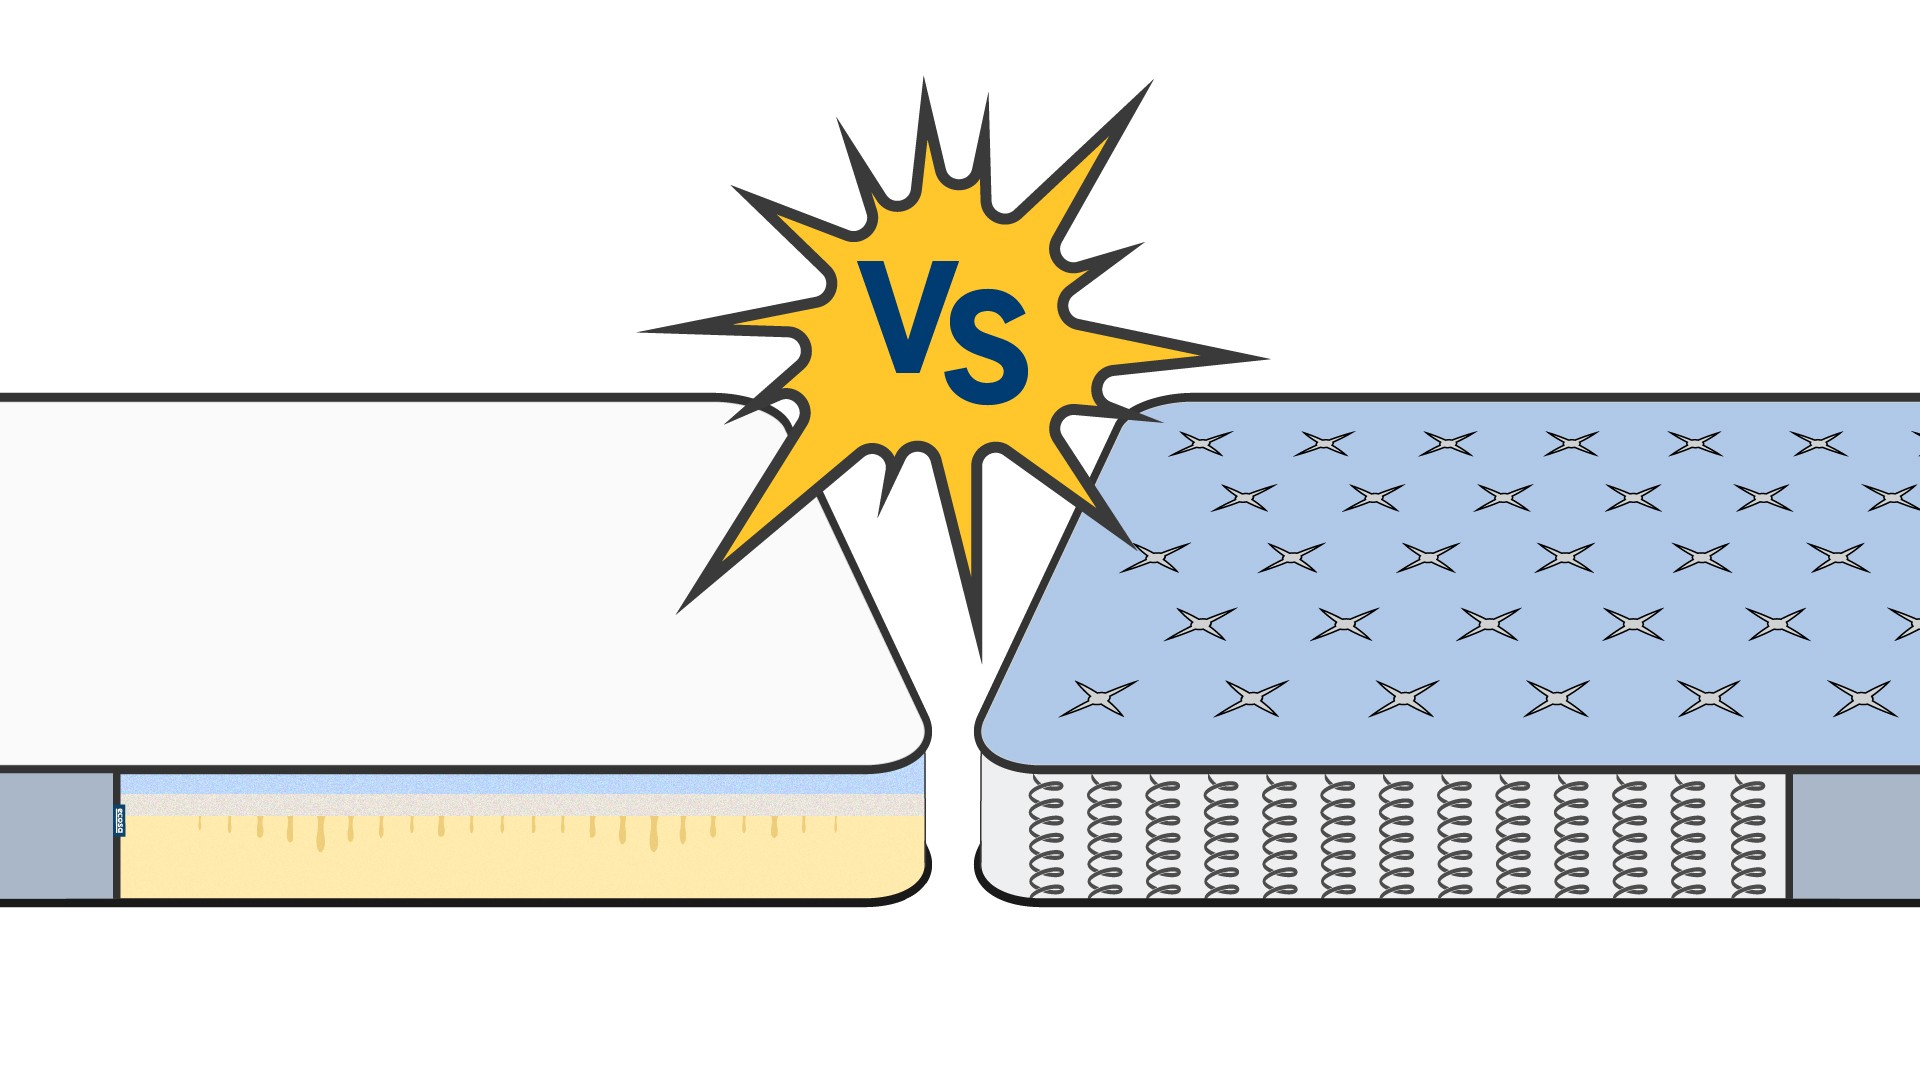 Lifespan of the Ecosa Memory Foam Mattress VS. Other Mattresses